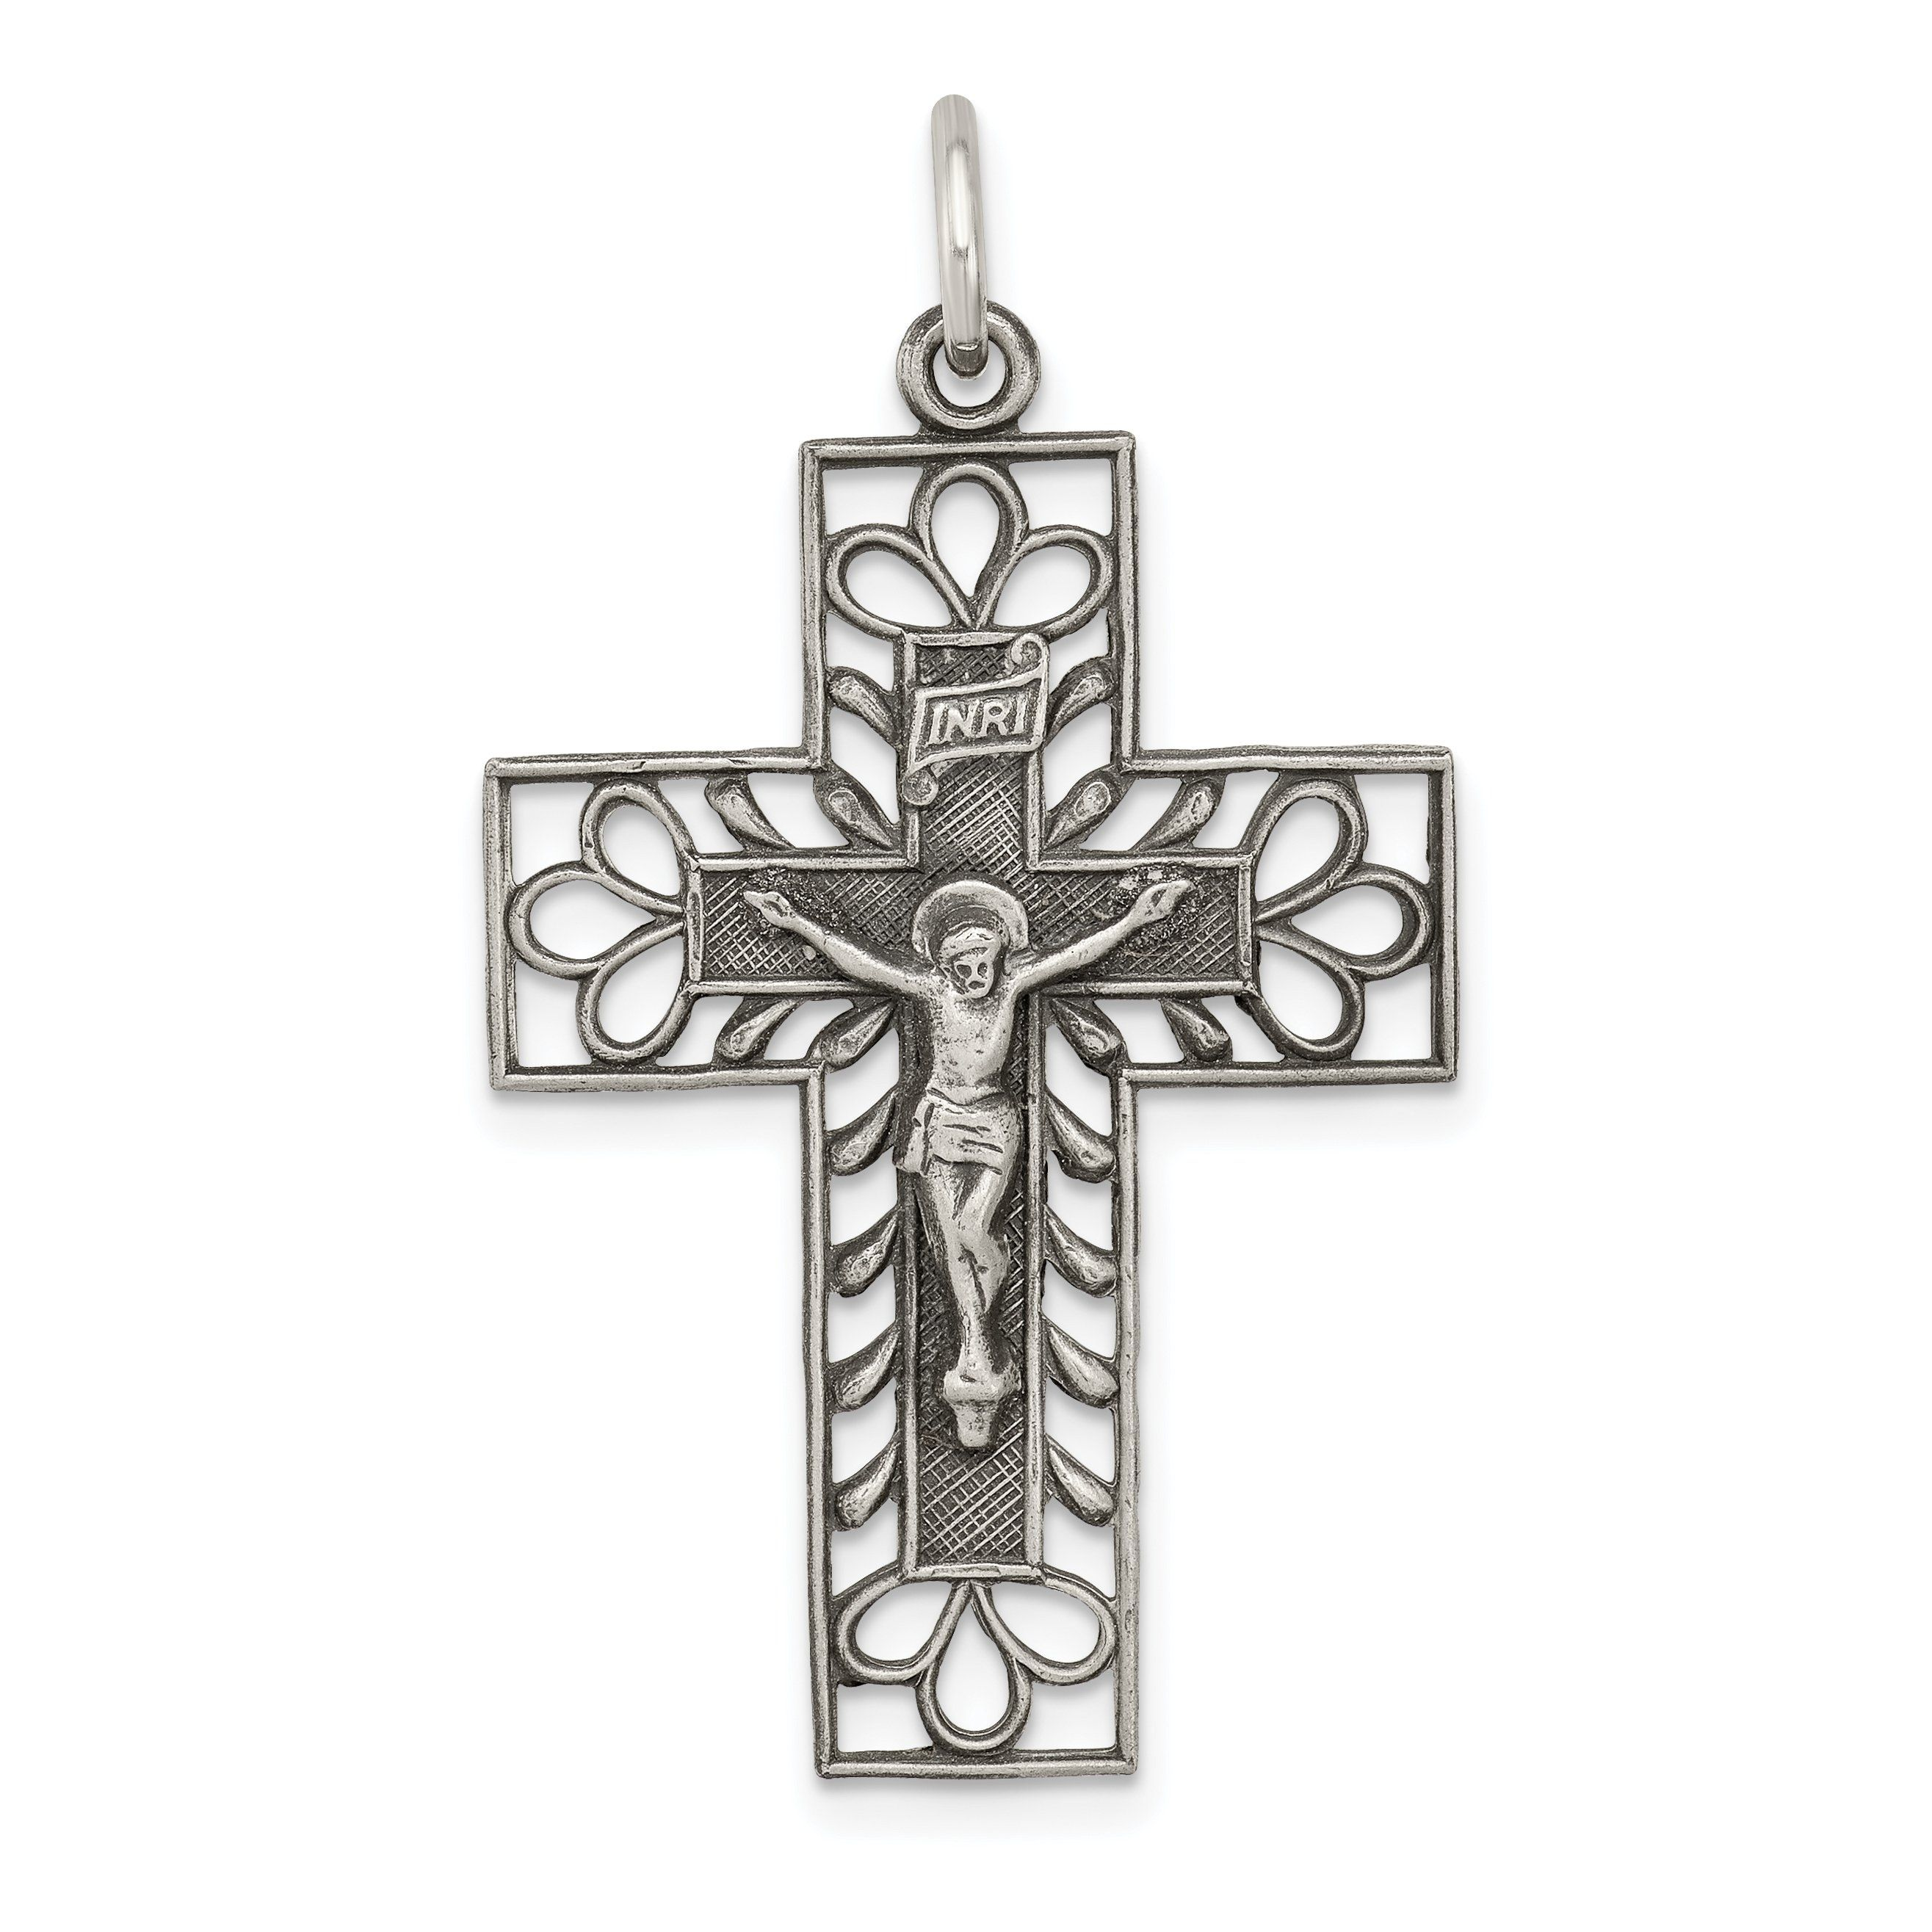 Best Quality Free Gift Box Sterling Silver Inri Cross Pendant